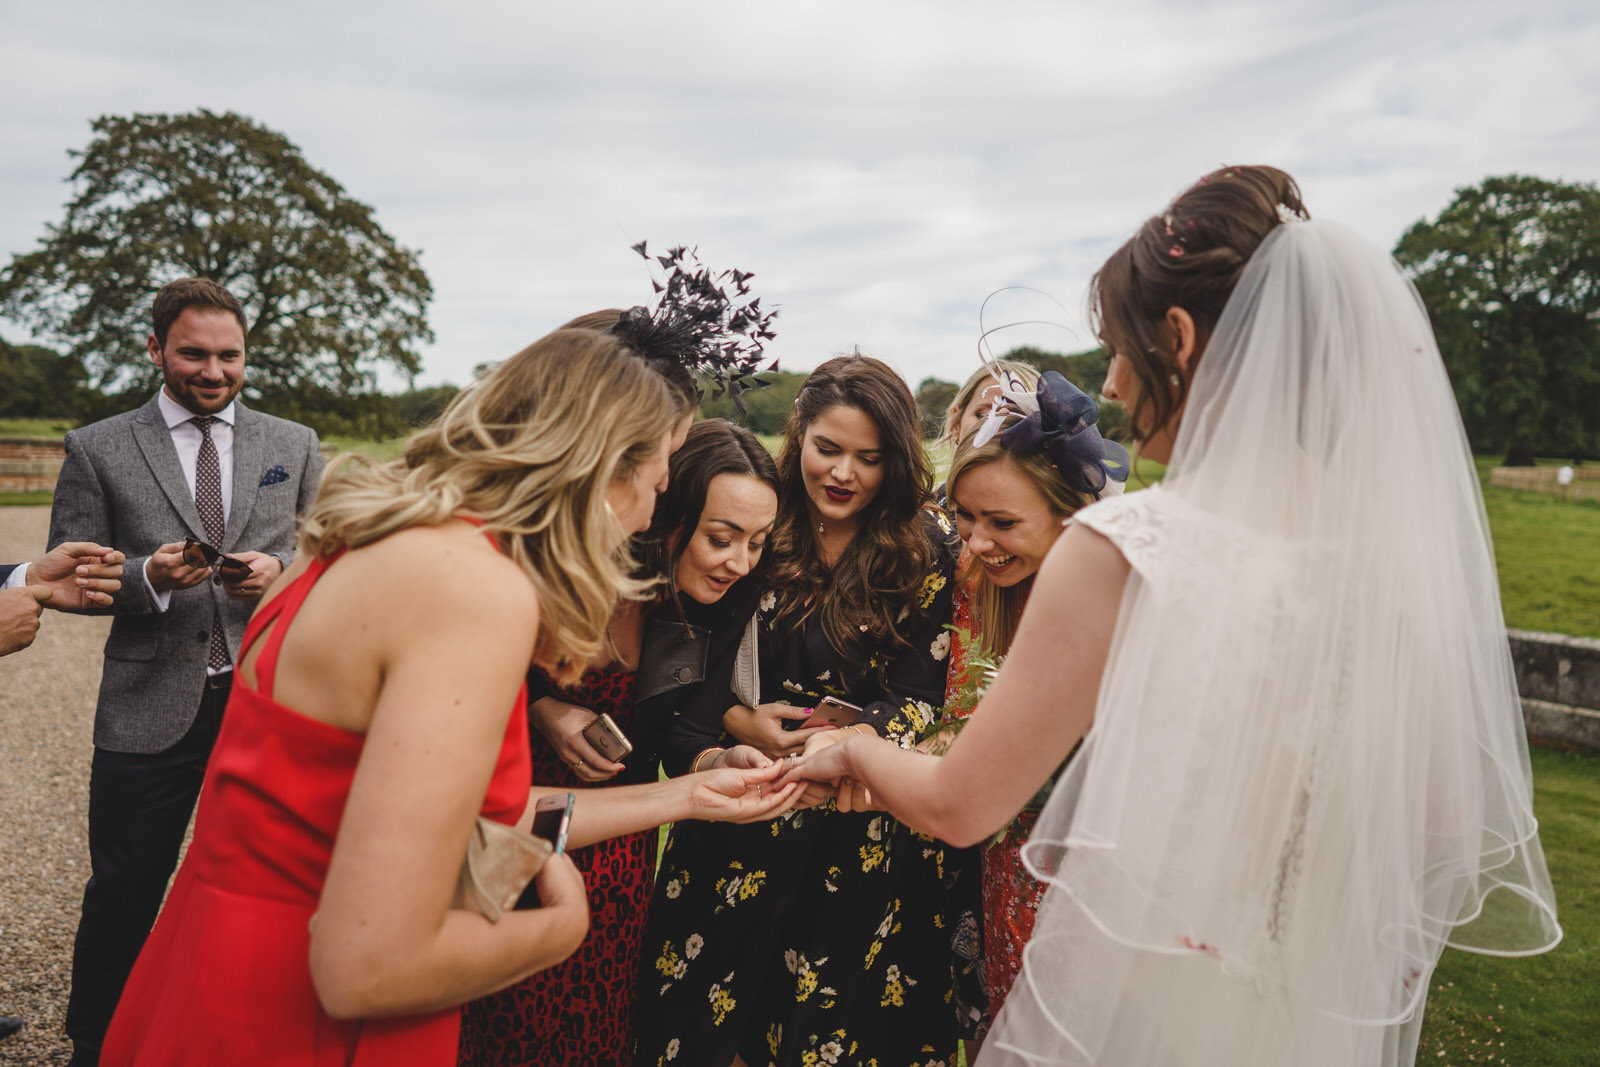 Iscoyd park wedding photographer in Shropshire with bride and guests